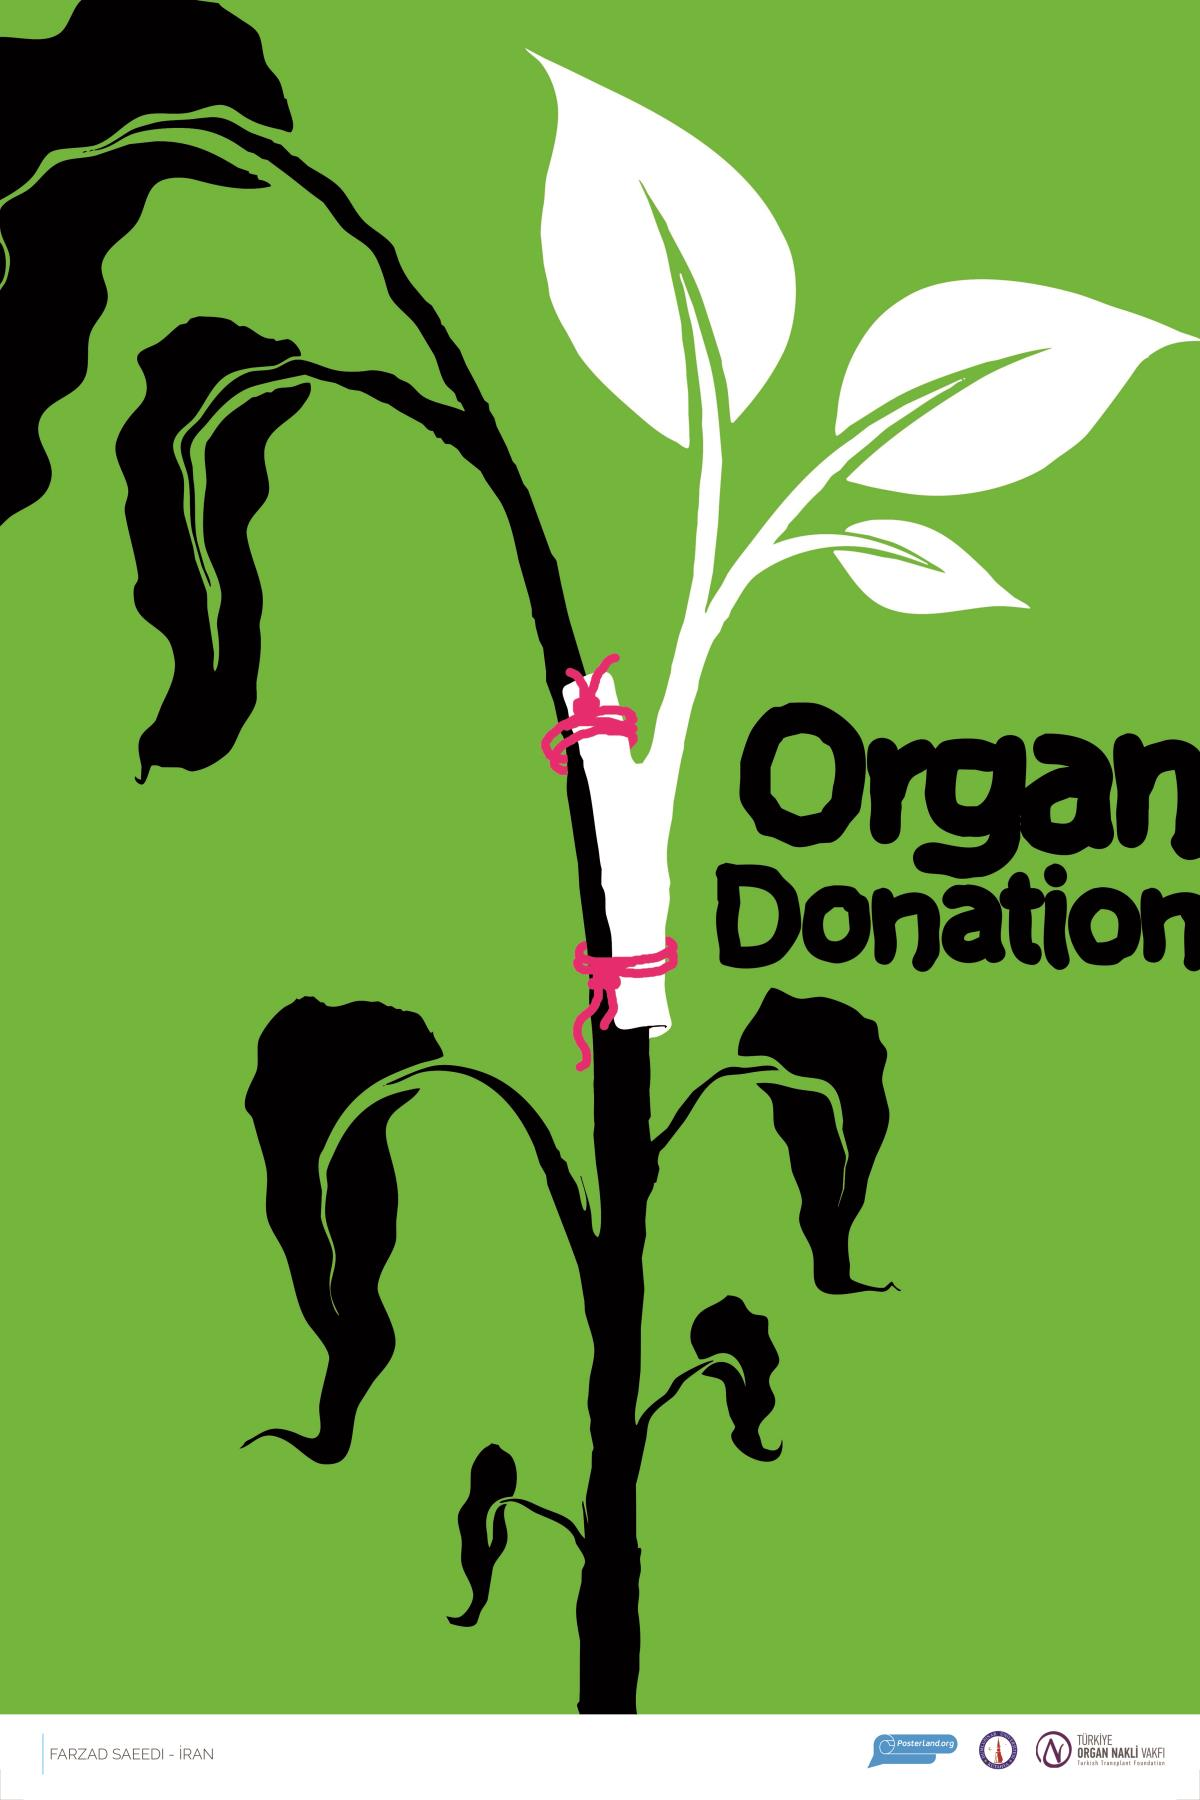 poster design organ donation by farzad sayeedi